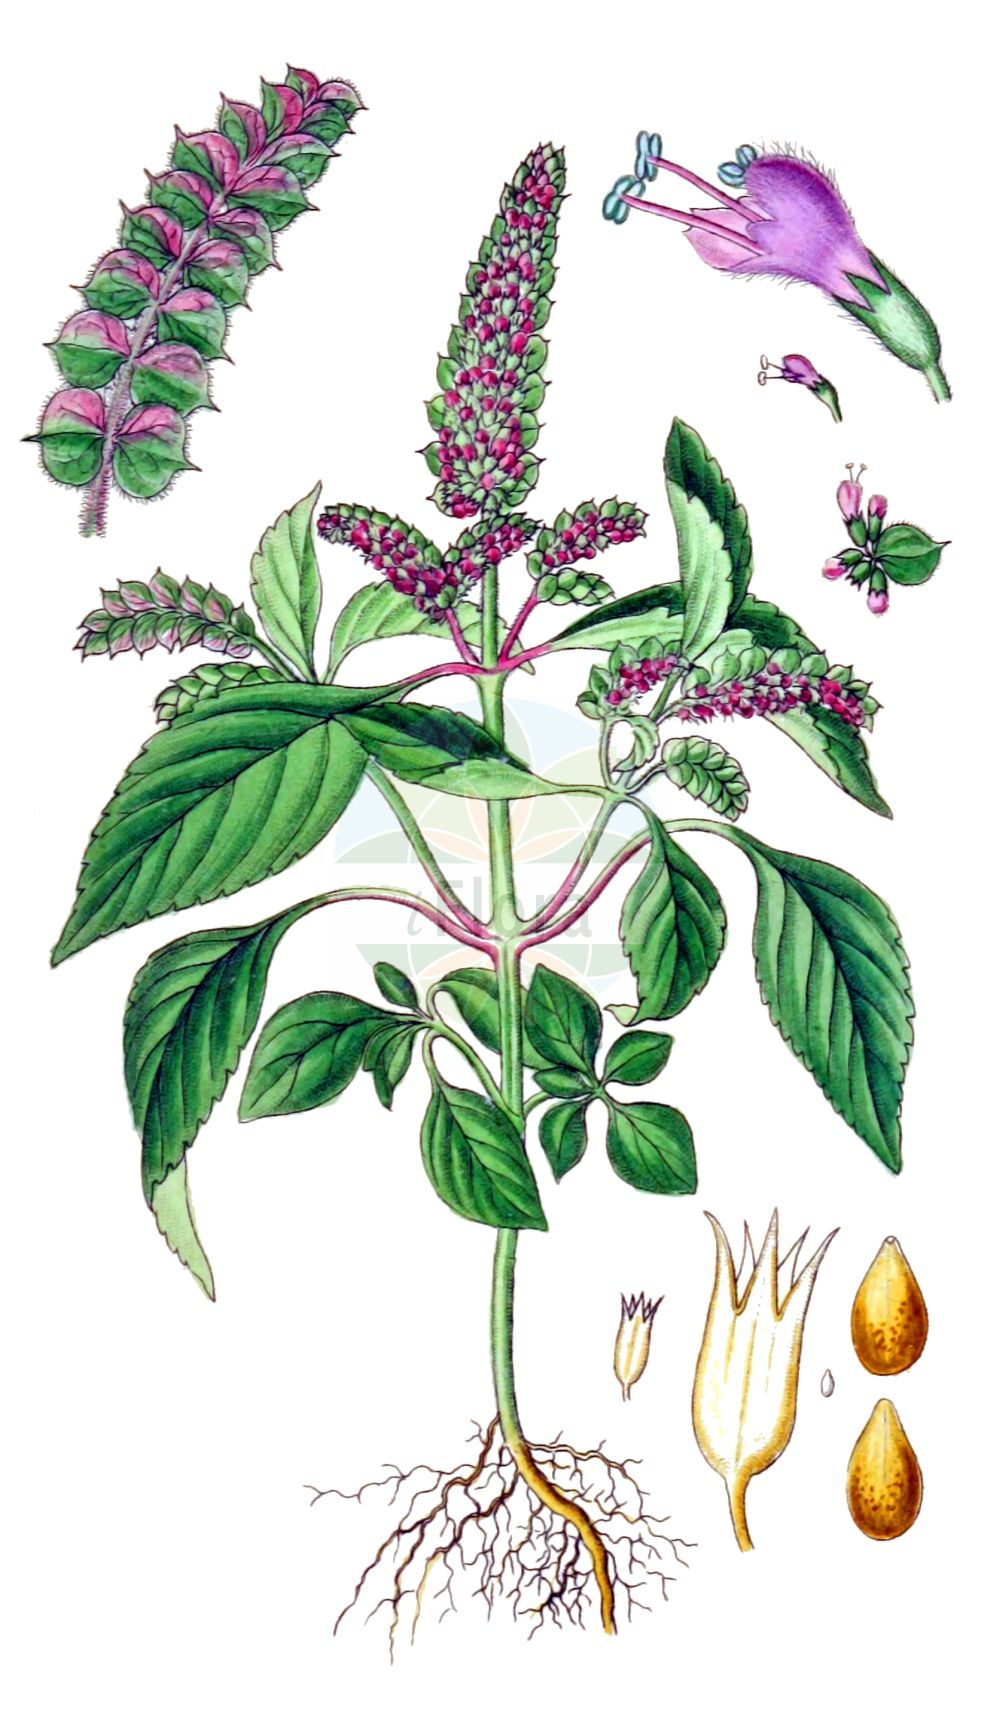 Historische Abbildung von Elsholtzia ciliata. Das Bild zeigt Blatt, Bluete, Frucht und Same. ---- Historical Drawing of Elsholtzia ciliata.The image is showing leaf, flower, fruit and seed.(Elsholtzia ciliata,Elsholtzia ciliata,Elsholtzia cristata,Elsholtzia formosana,Elsholtzia interrupta,Elsholtzia minima,Elsholtzia patrinii,Elsholtzia pseudocristata,Hyssopus bracteatus,Hyssopus ocymifolius,Mentha baikalensis,Mentha cristata,Mentha ovata,Mentha patrinii,Mentha perilloides,Perilla polystachya,Sideritis ciliata,Elsholtzia,Lamiaceae,Lippenbluetengewaechse,Lippenbluetler,Nettle family,Blatt,Bluete,Frucht,Same,leaf,flower,fruit,seed,Sturm (1796f))